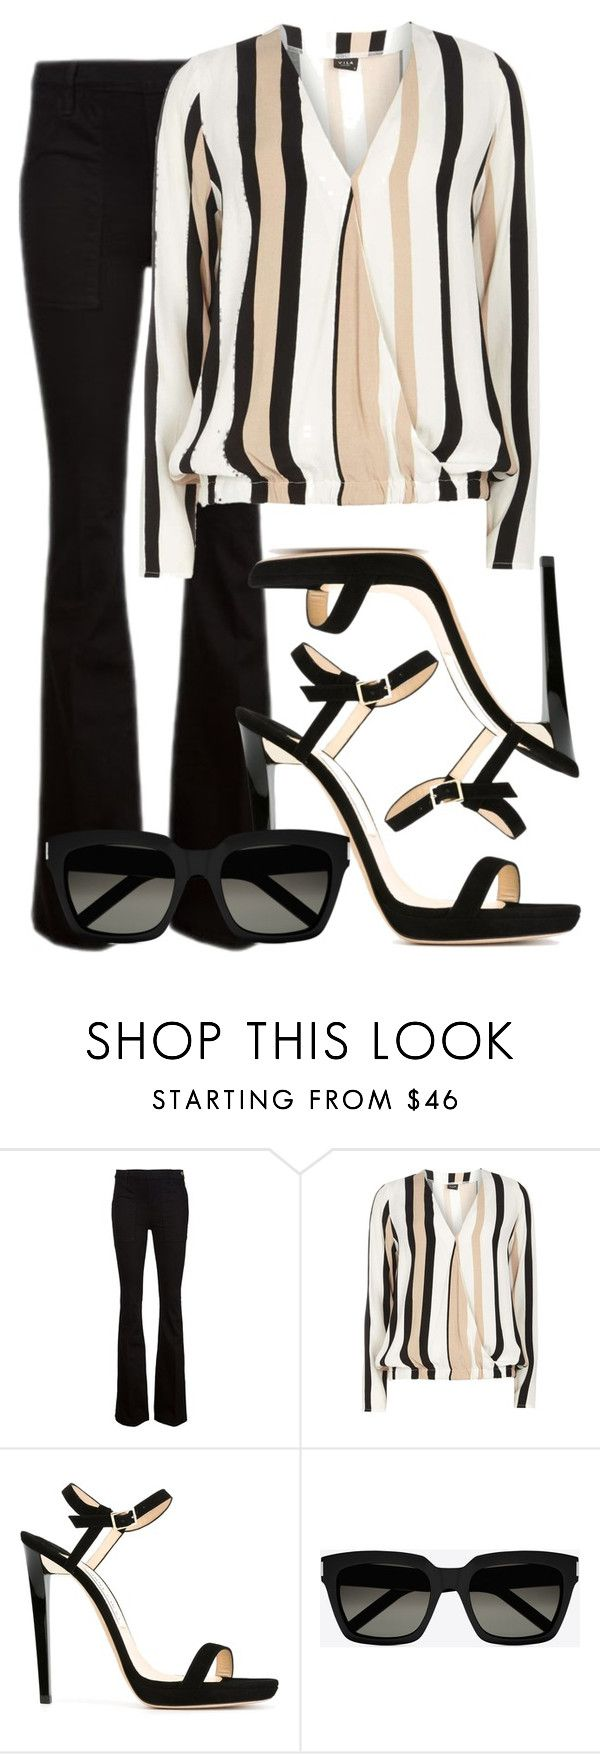 """modern"" by mint56 ❤ liked on Polyvore featuring Frame Denim, Dorothy Perkins, Jimmy Choo, Yves Saint Laurent and modern"